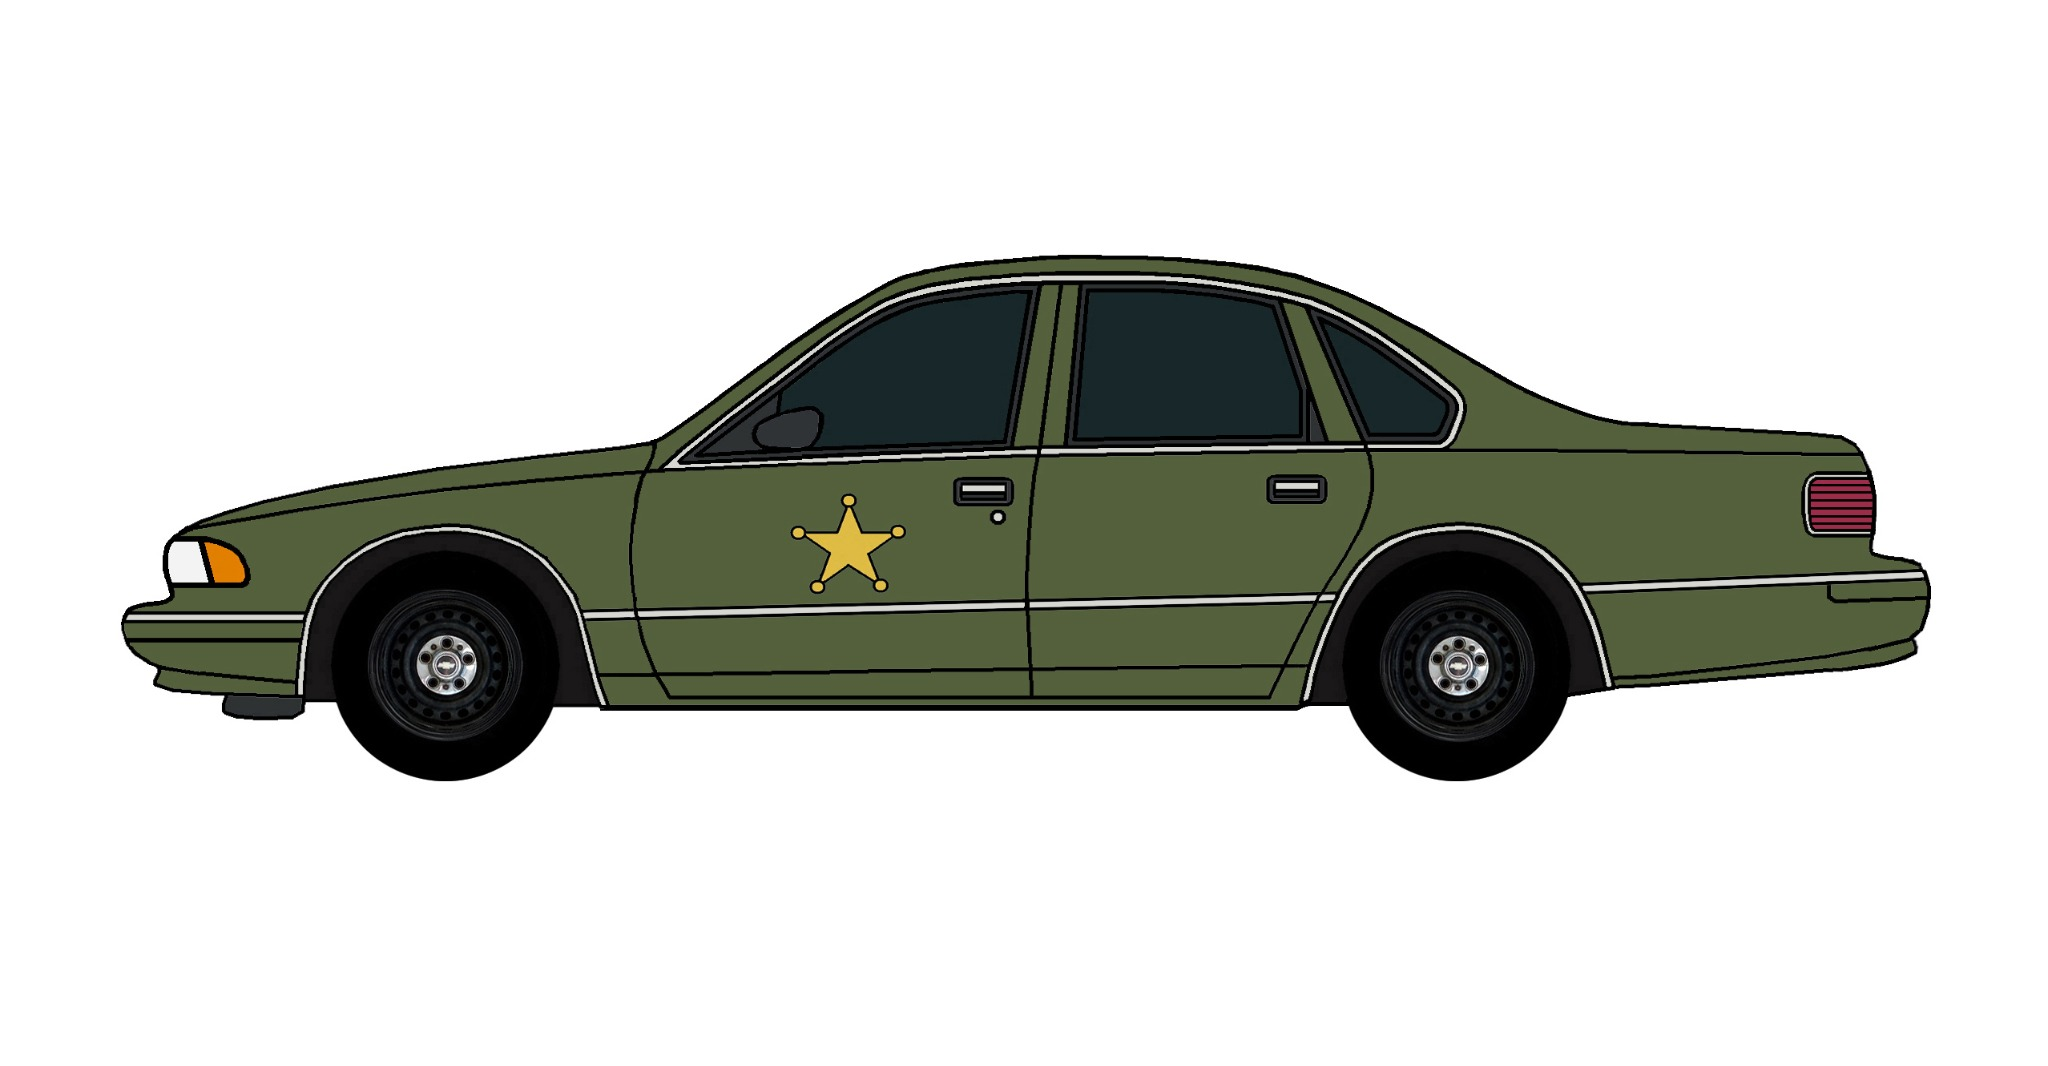 1995 Chevy Caprice Police Car ARMY GREEN